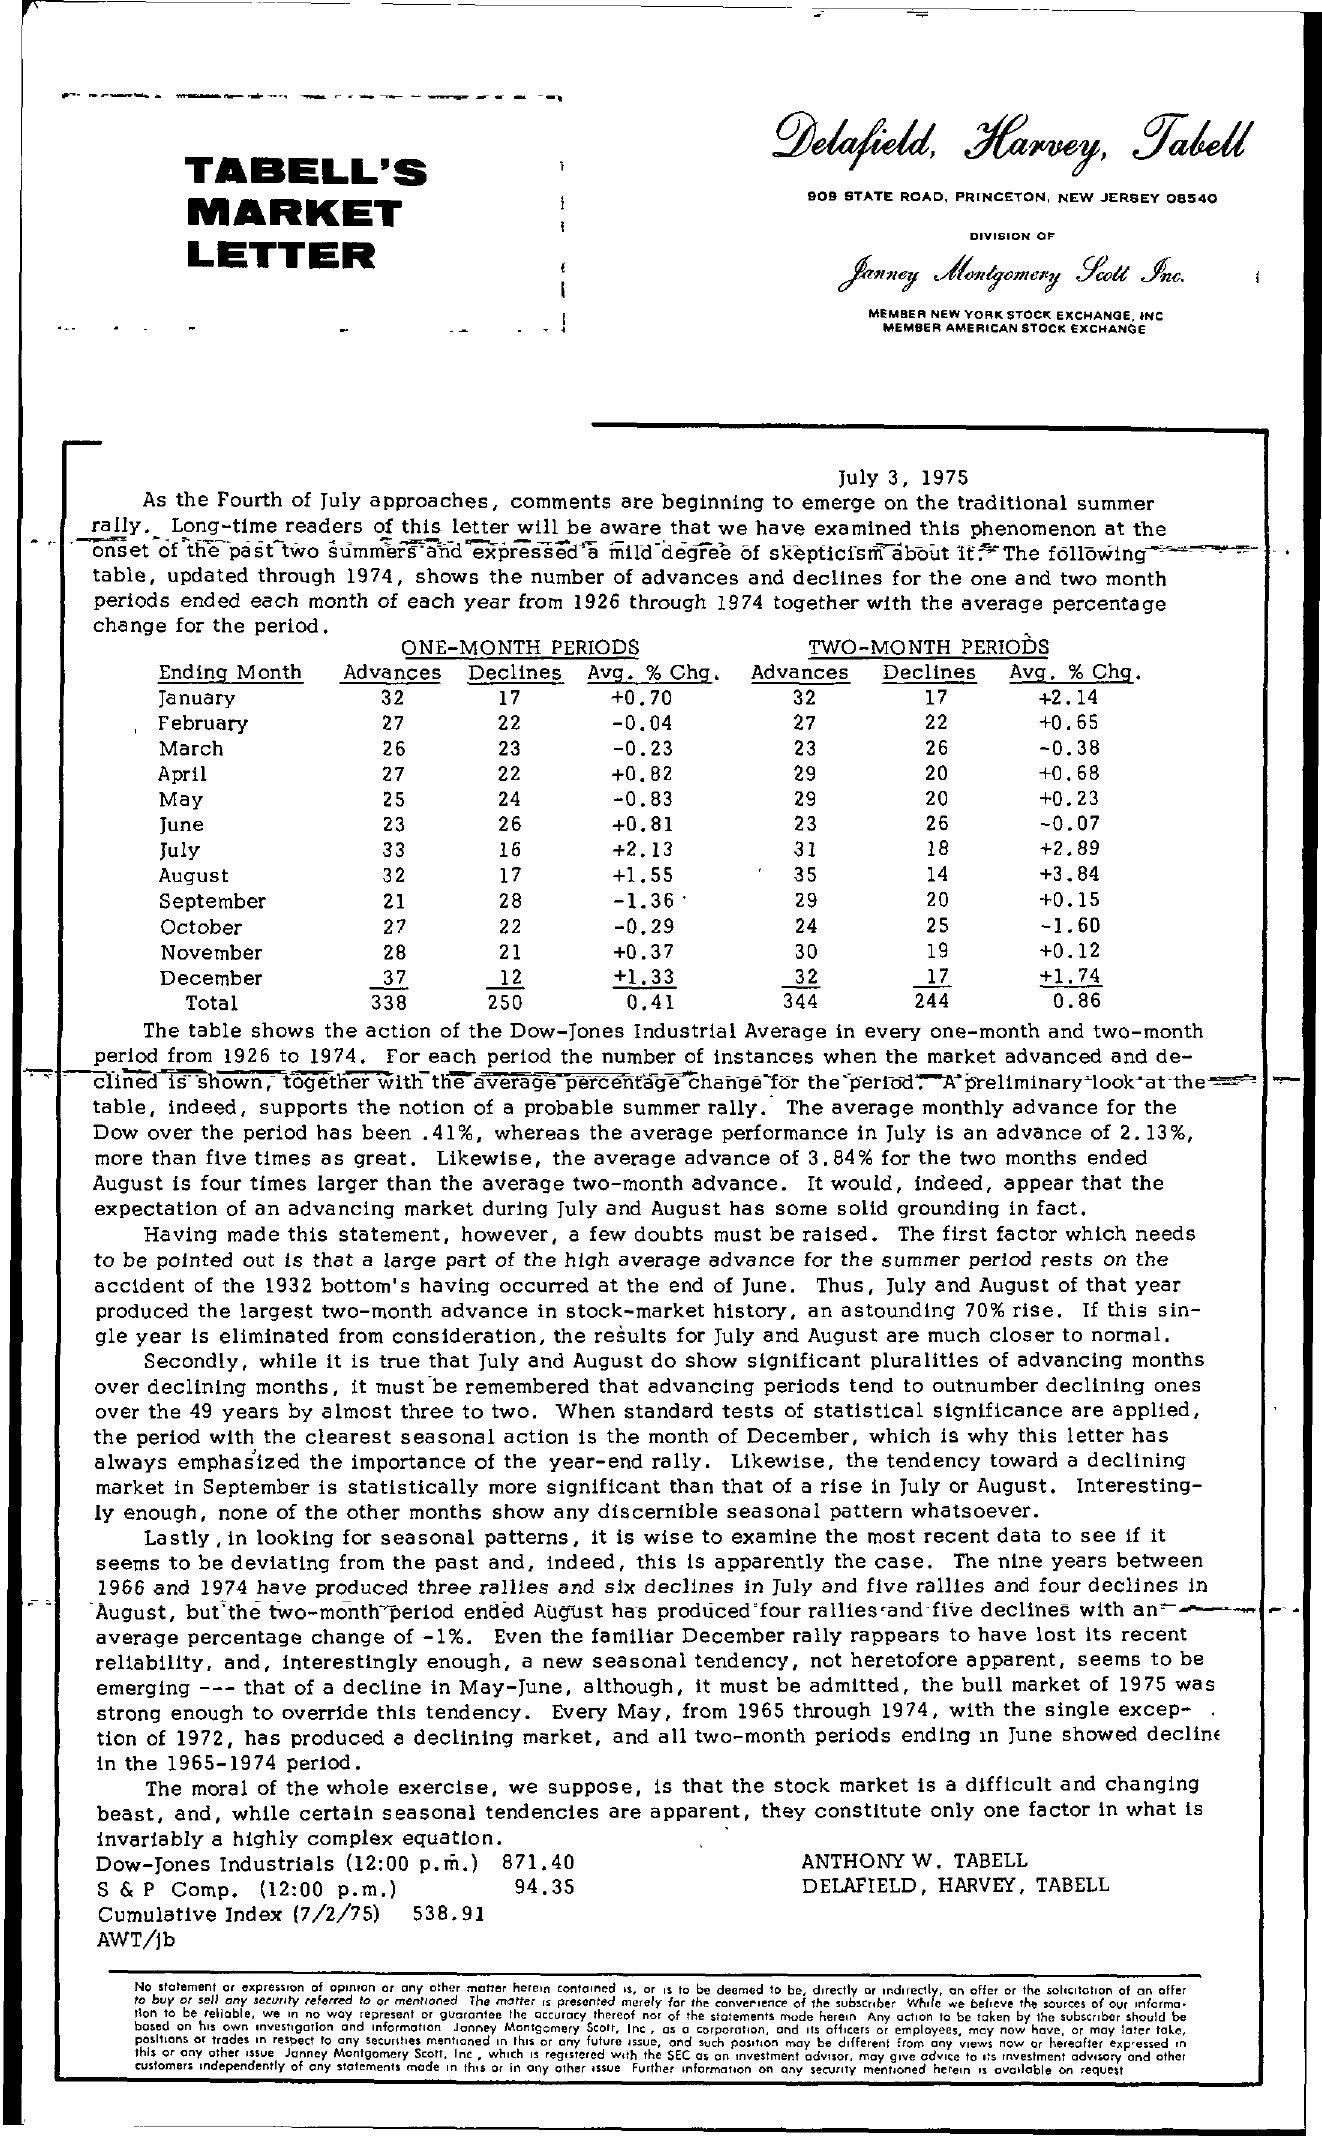 Tabell's Market Letter - July 03, 1975